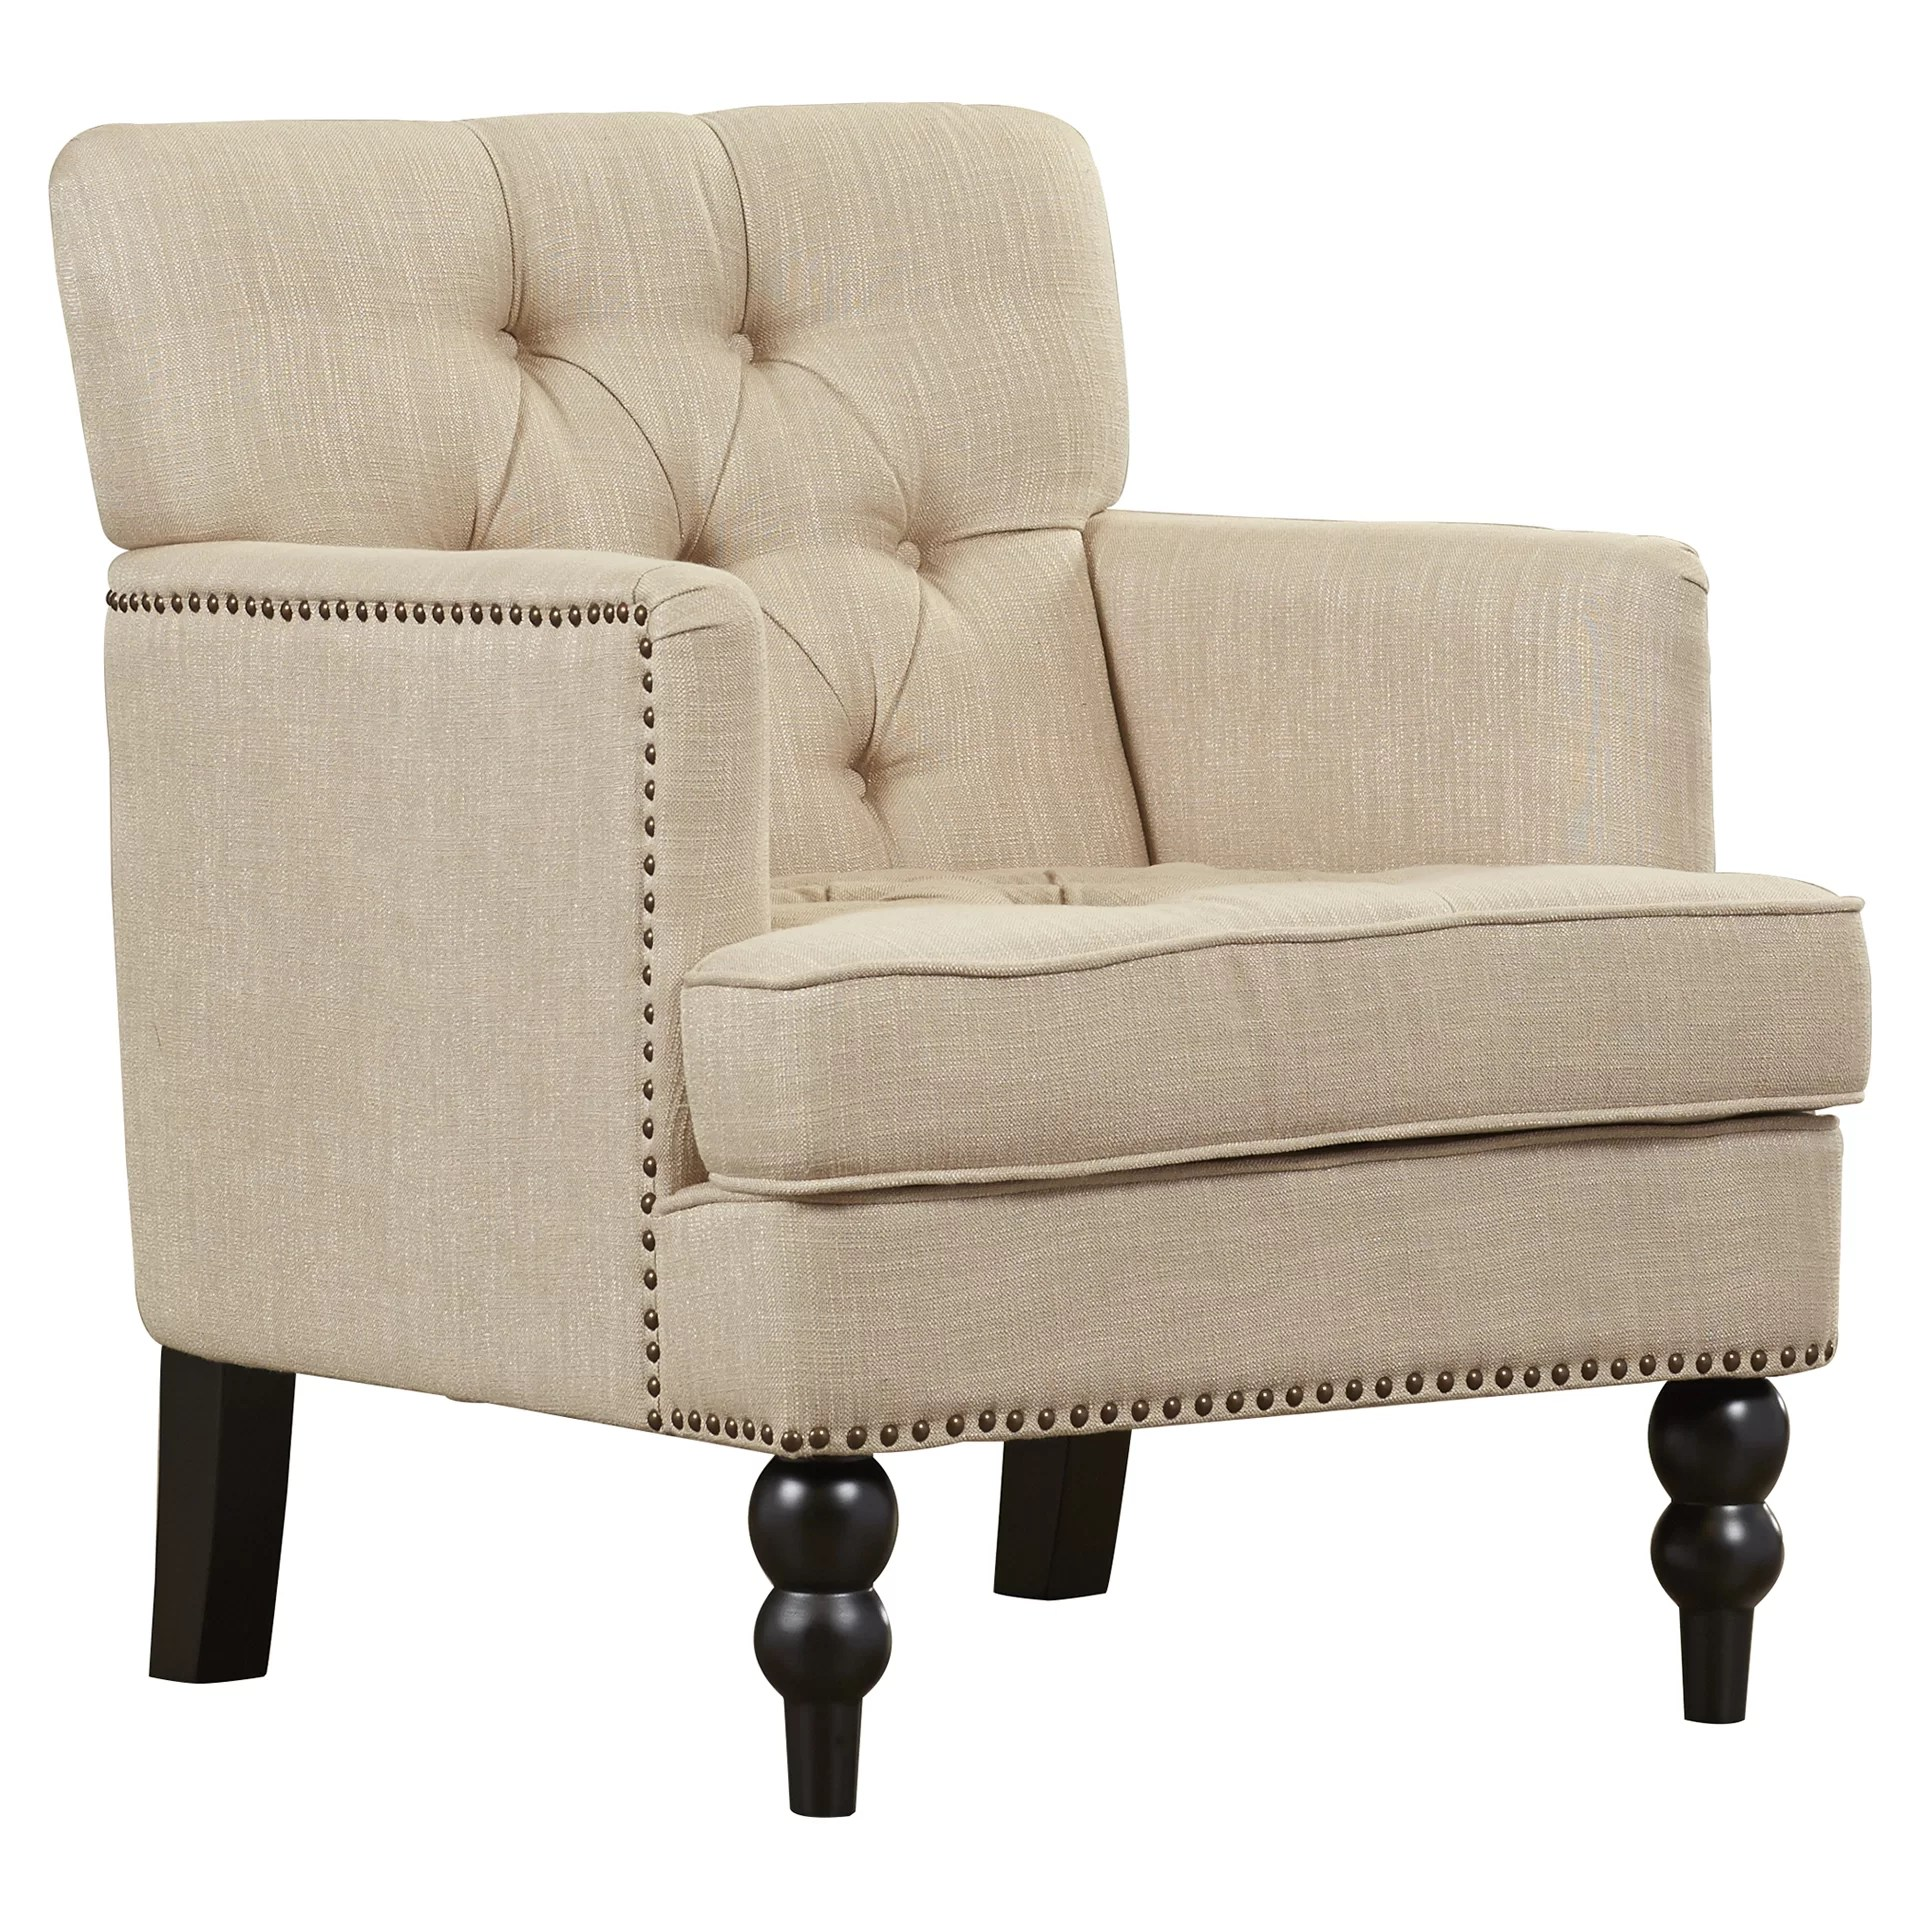 Upholstered Club Chair Alcott Hill Summerfield Tufted Upholstered Club Arm Chair